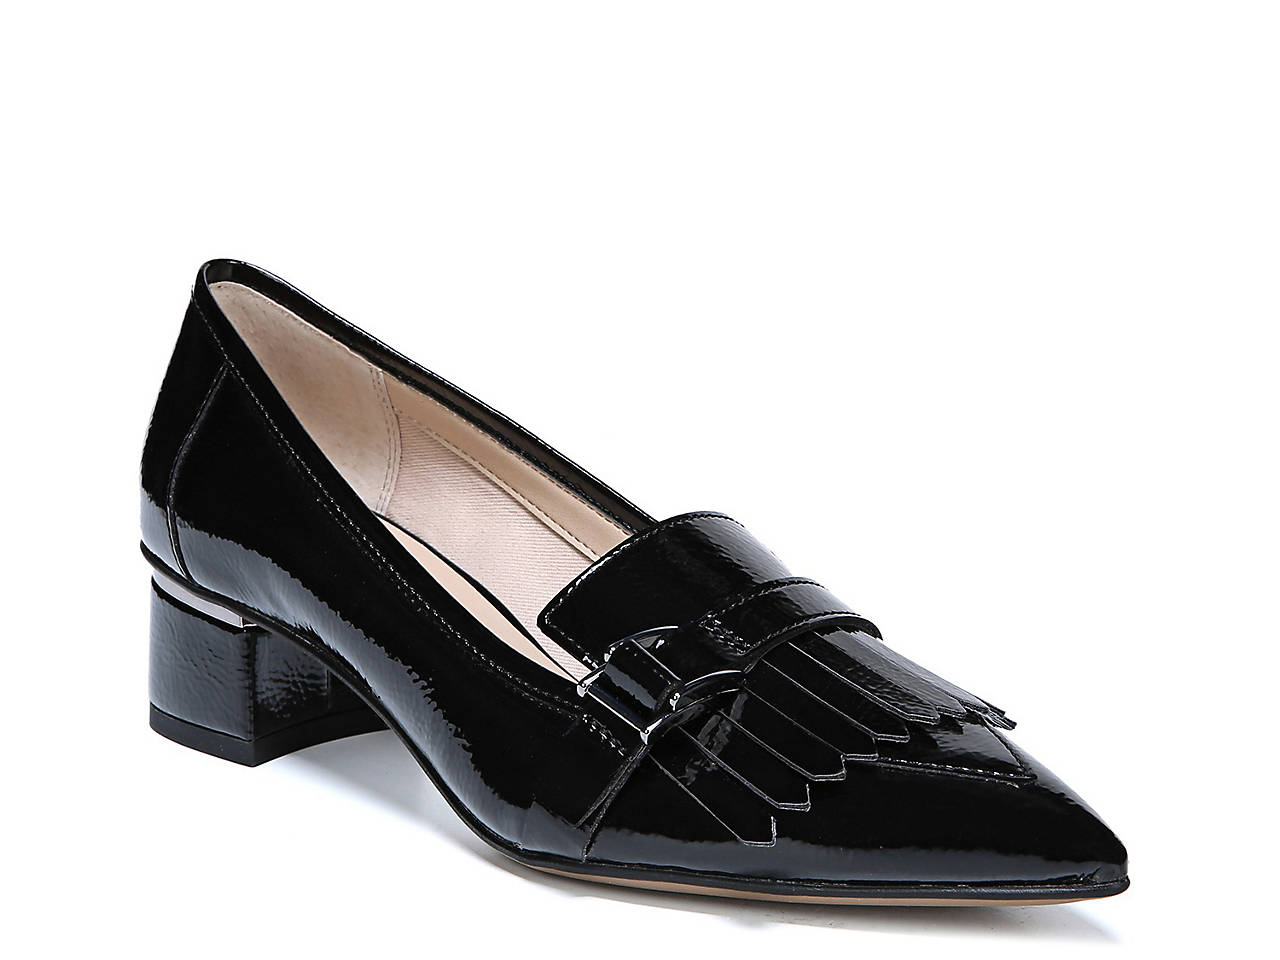 a5d53a88214 Franco Sarto Grenoble Loafer Women s Shoes